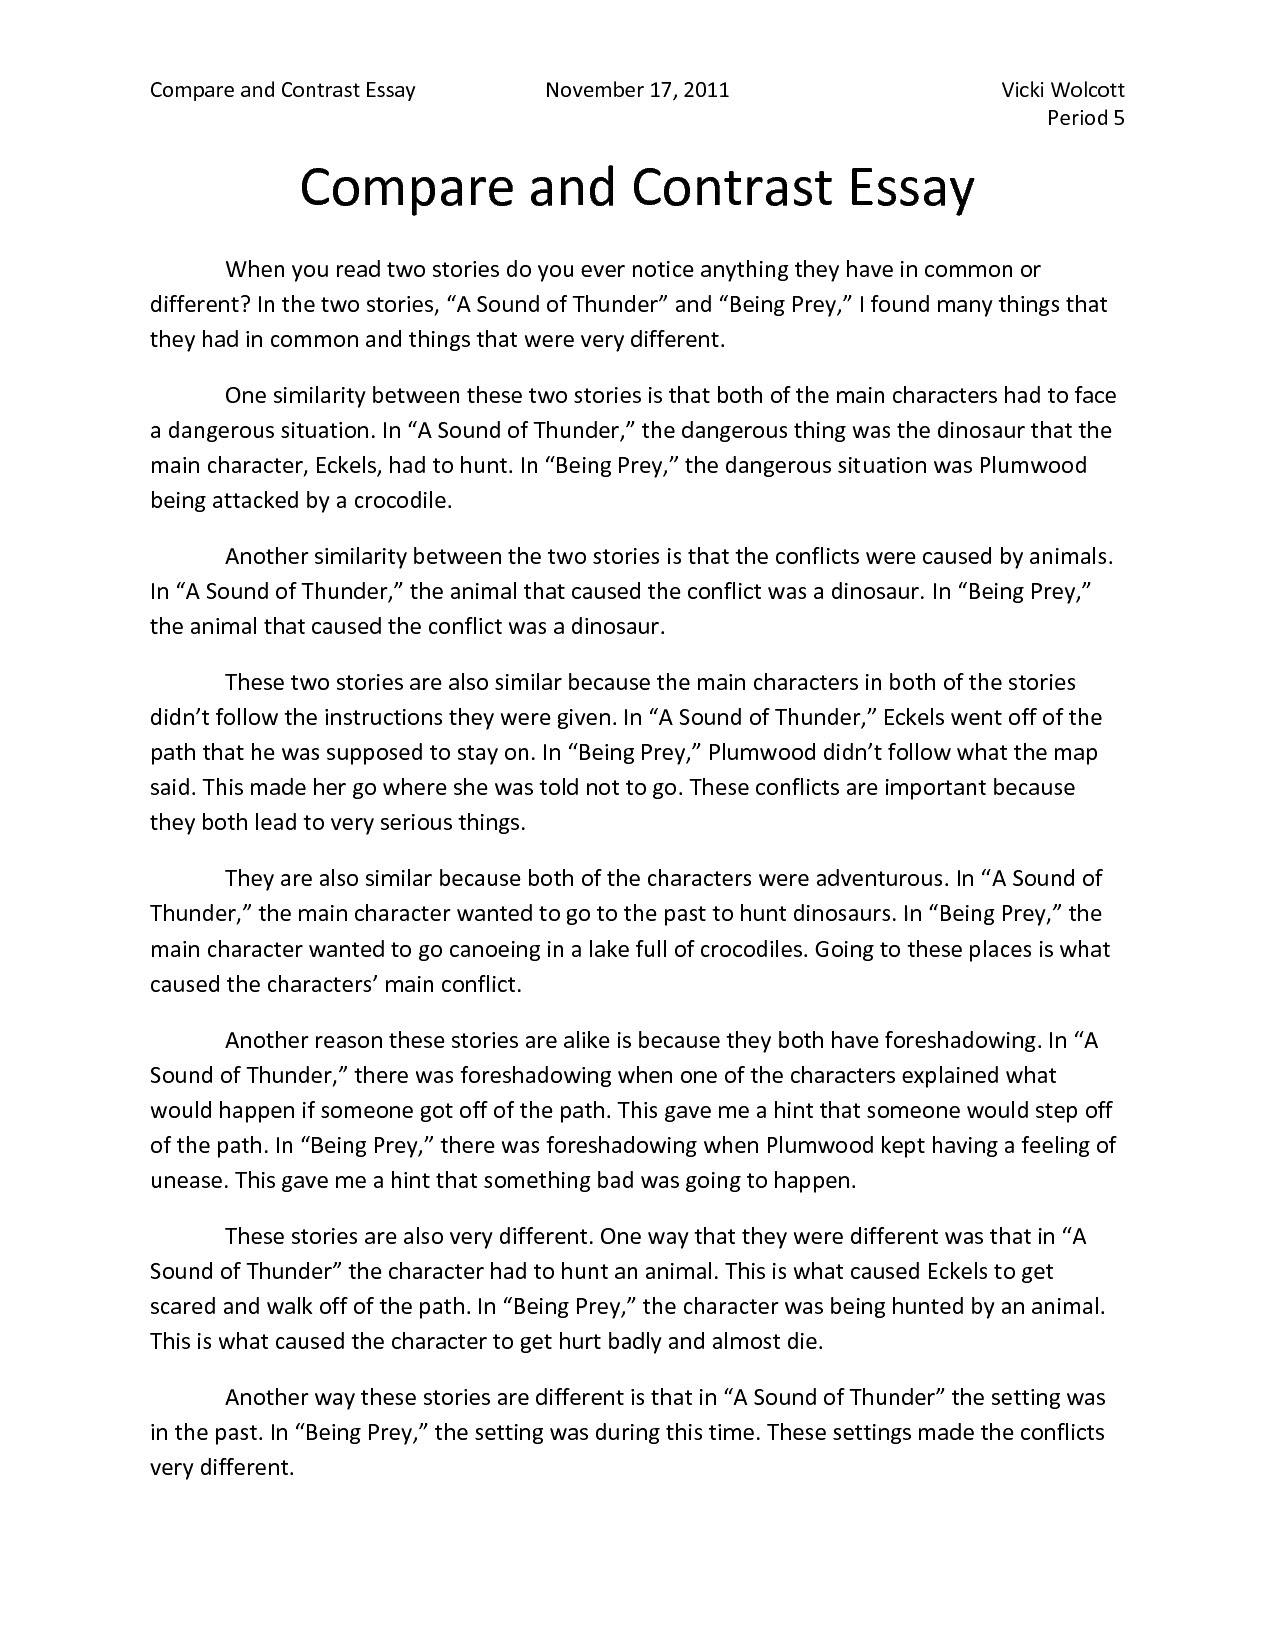 writing a compare and contrast essay about presentation of ideas quizlet